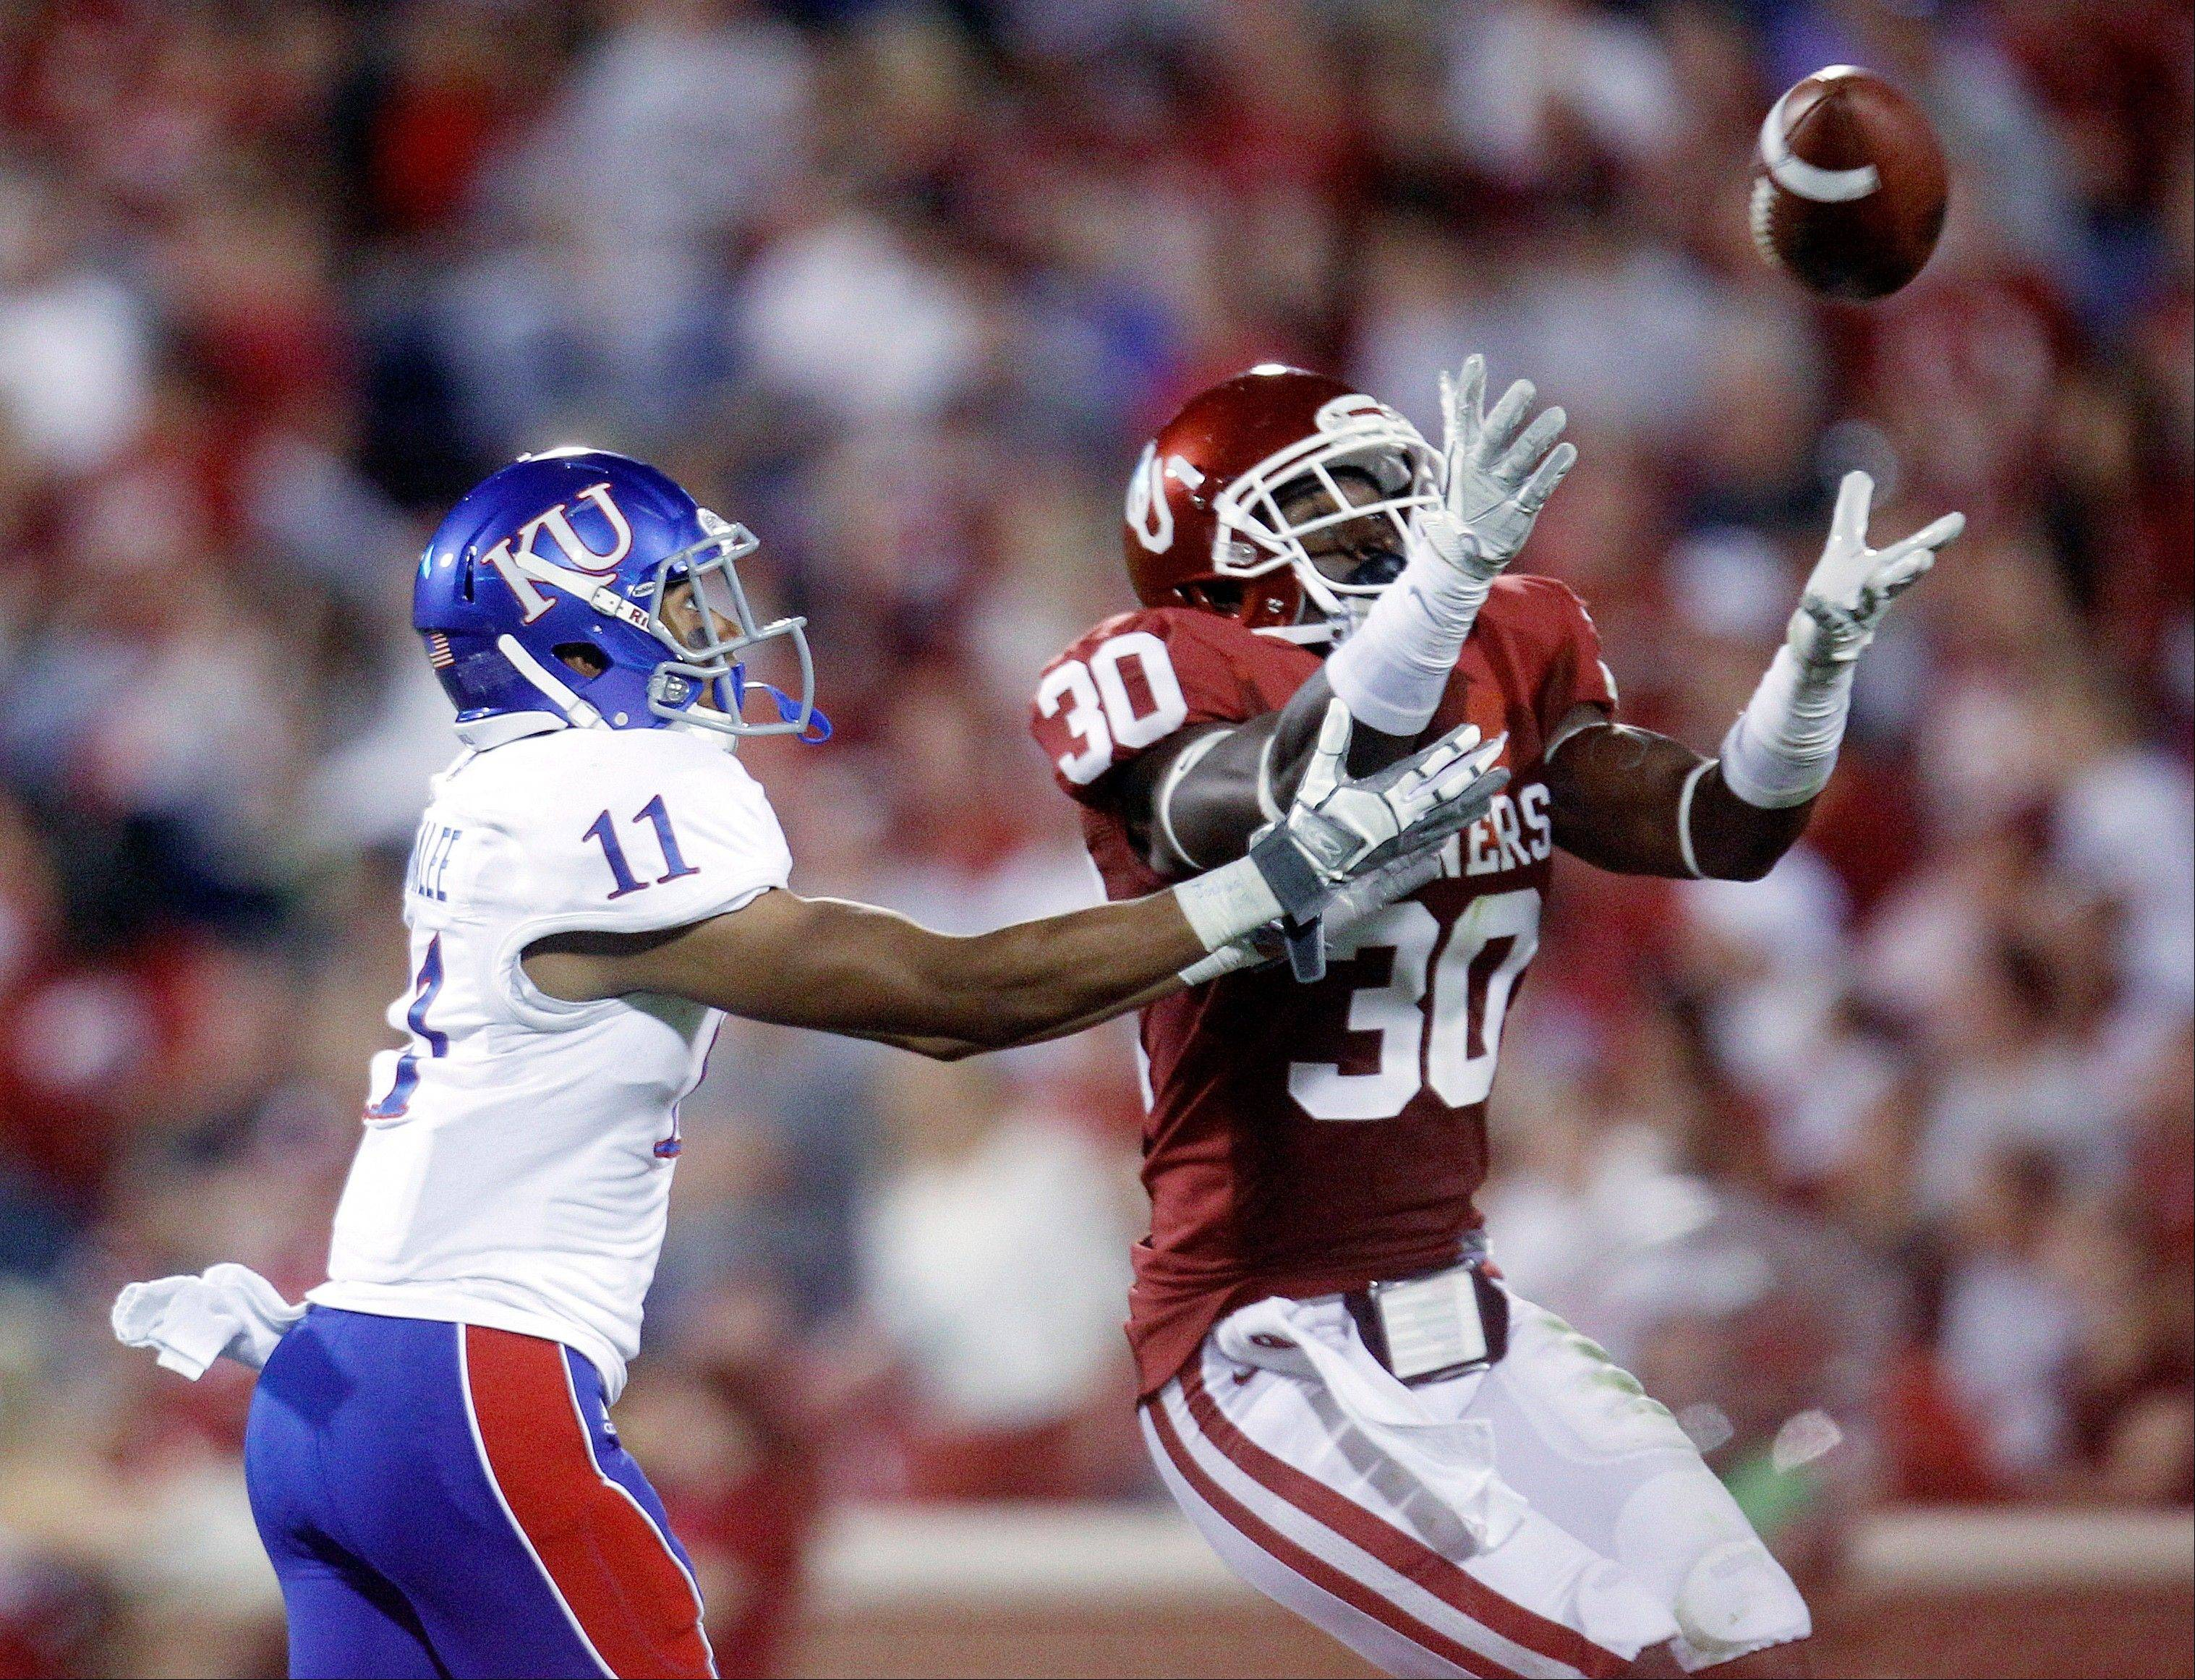 Oklahoma defensive back Javon Harris (30) intercepts a pass intended for Kansas wide receiver Tre' Parmalee (11) during the fourth quarter of an NCAA college football game in Norman, Okla., Saturday, Oct. 20, 2012. Oklahoma won 52-7.